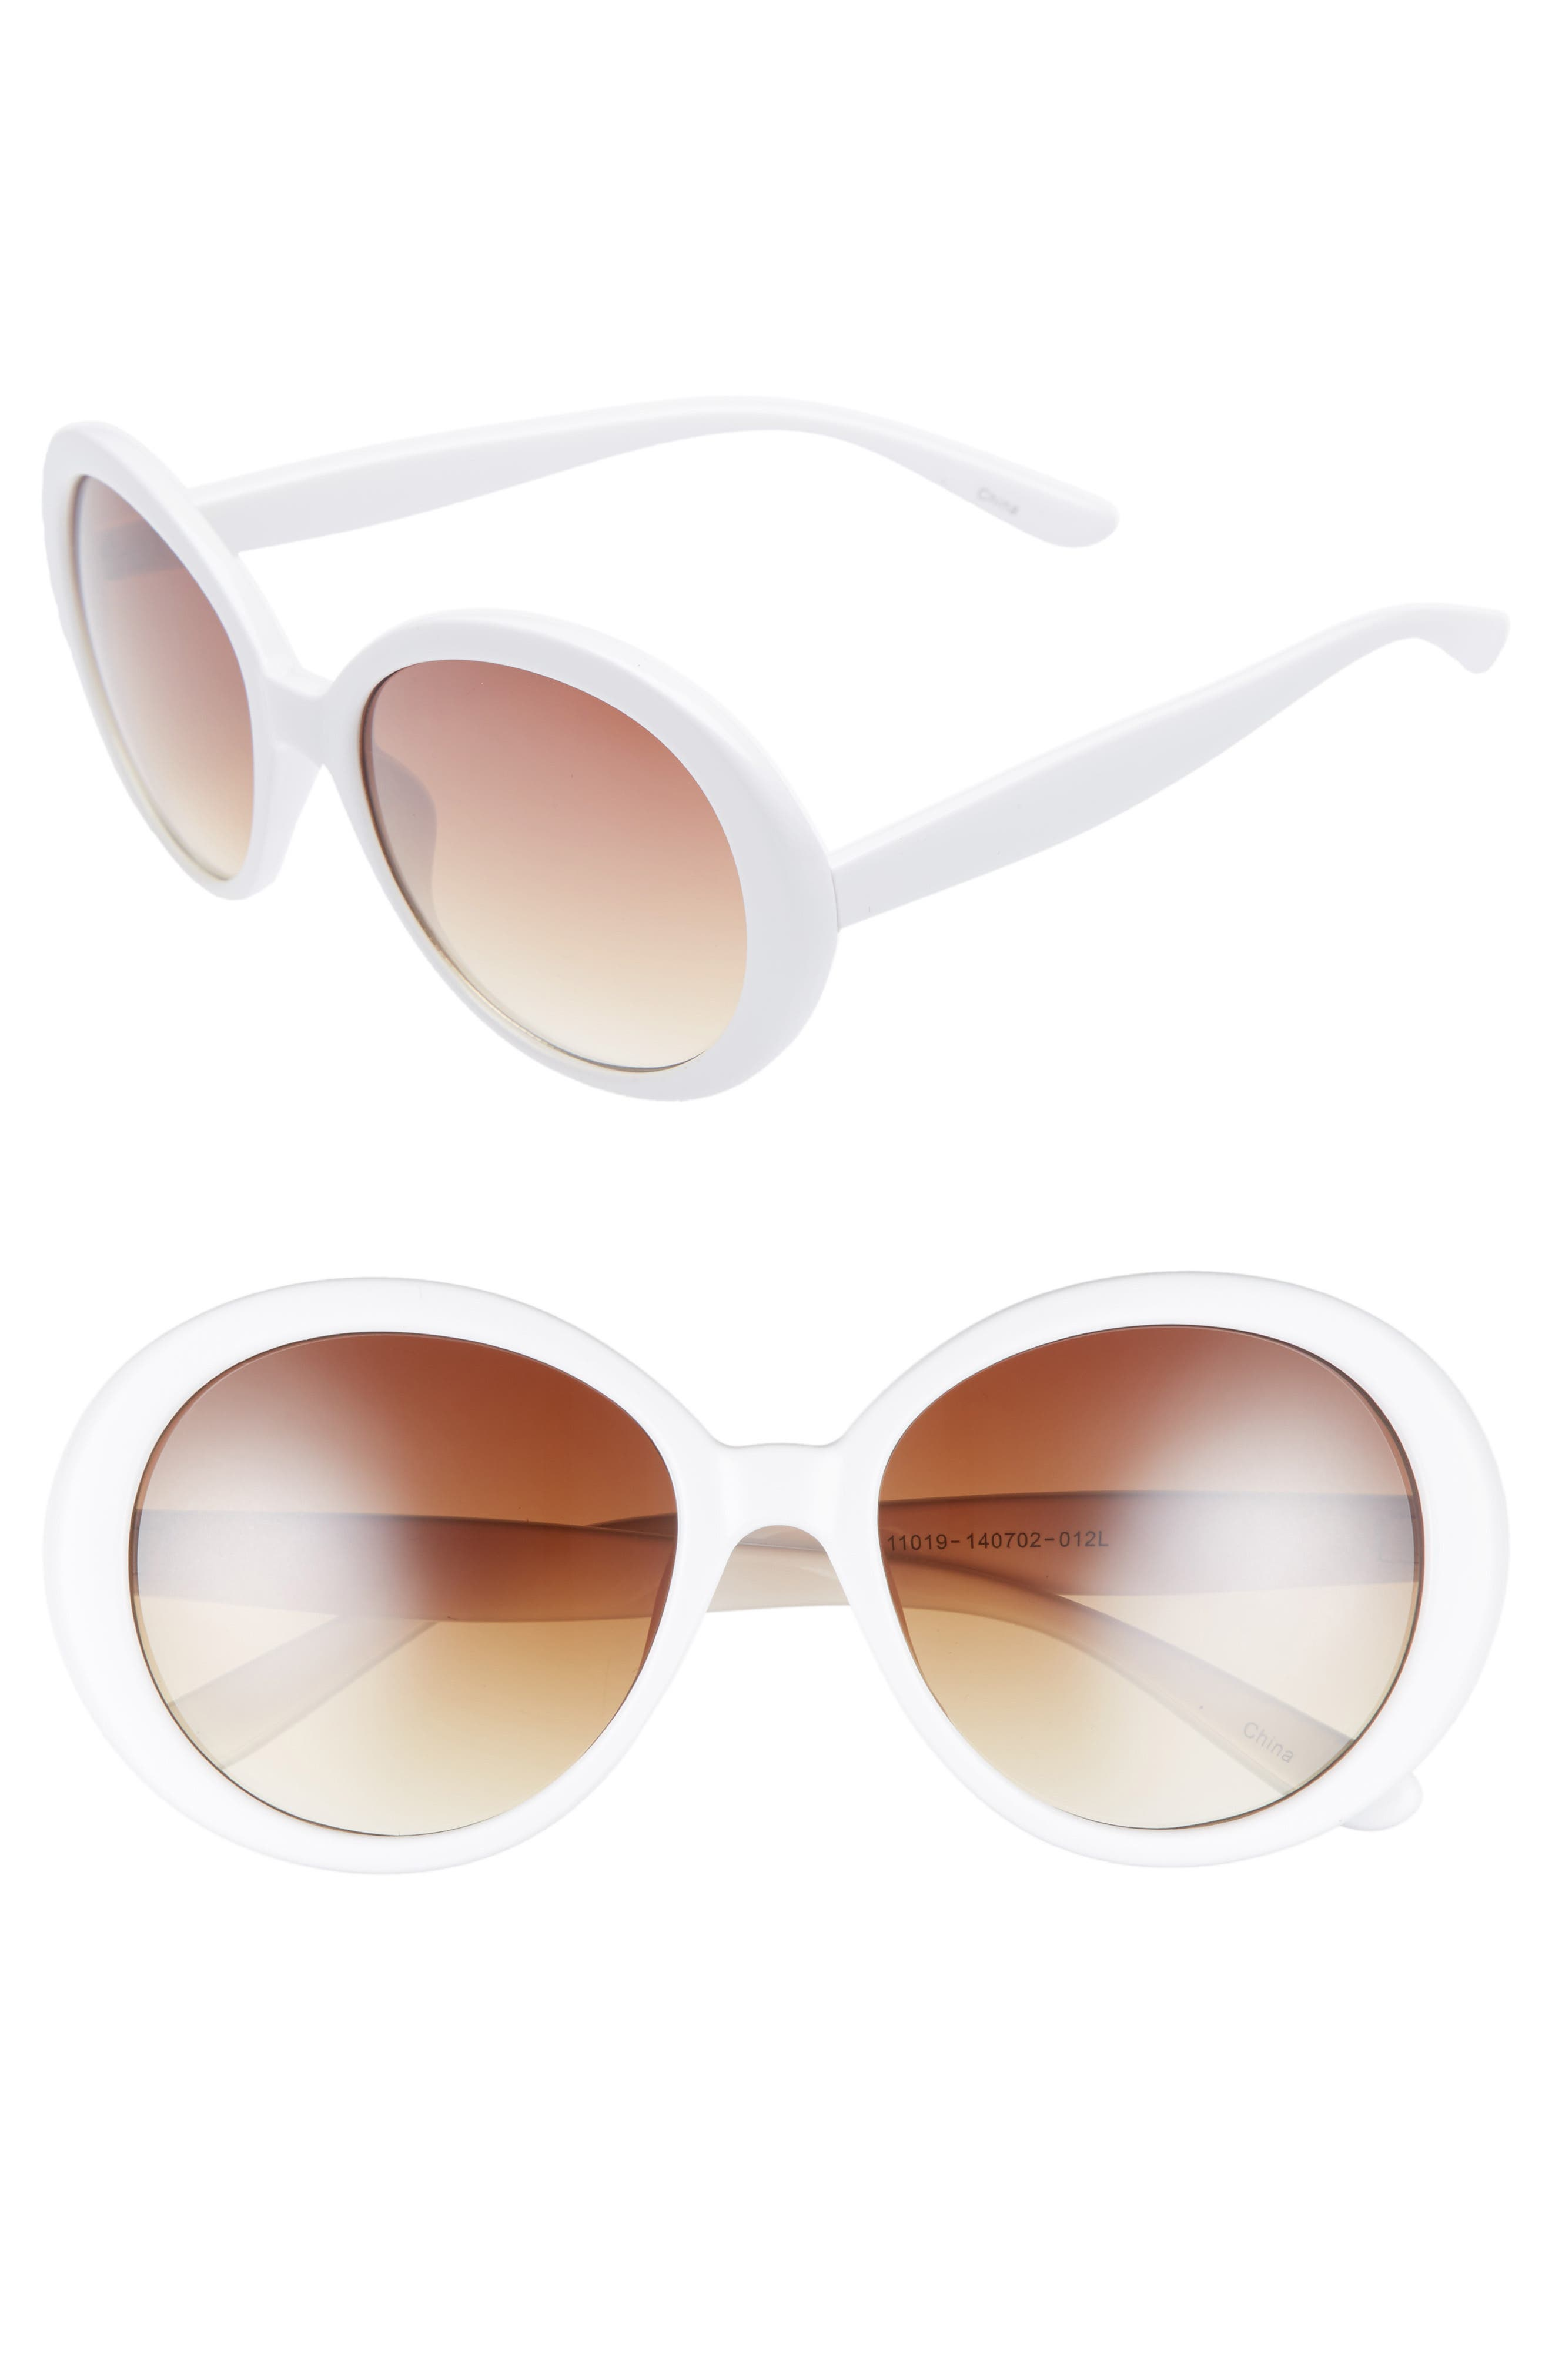 55mm Oval Sunglasses,                             Main thumbnail 1, color,                             100